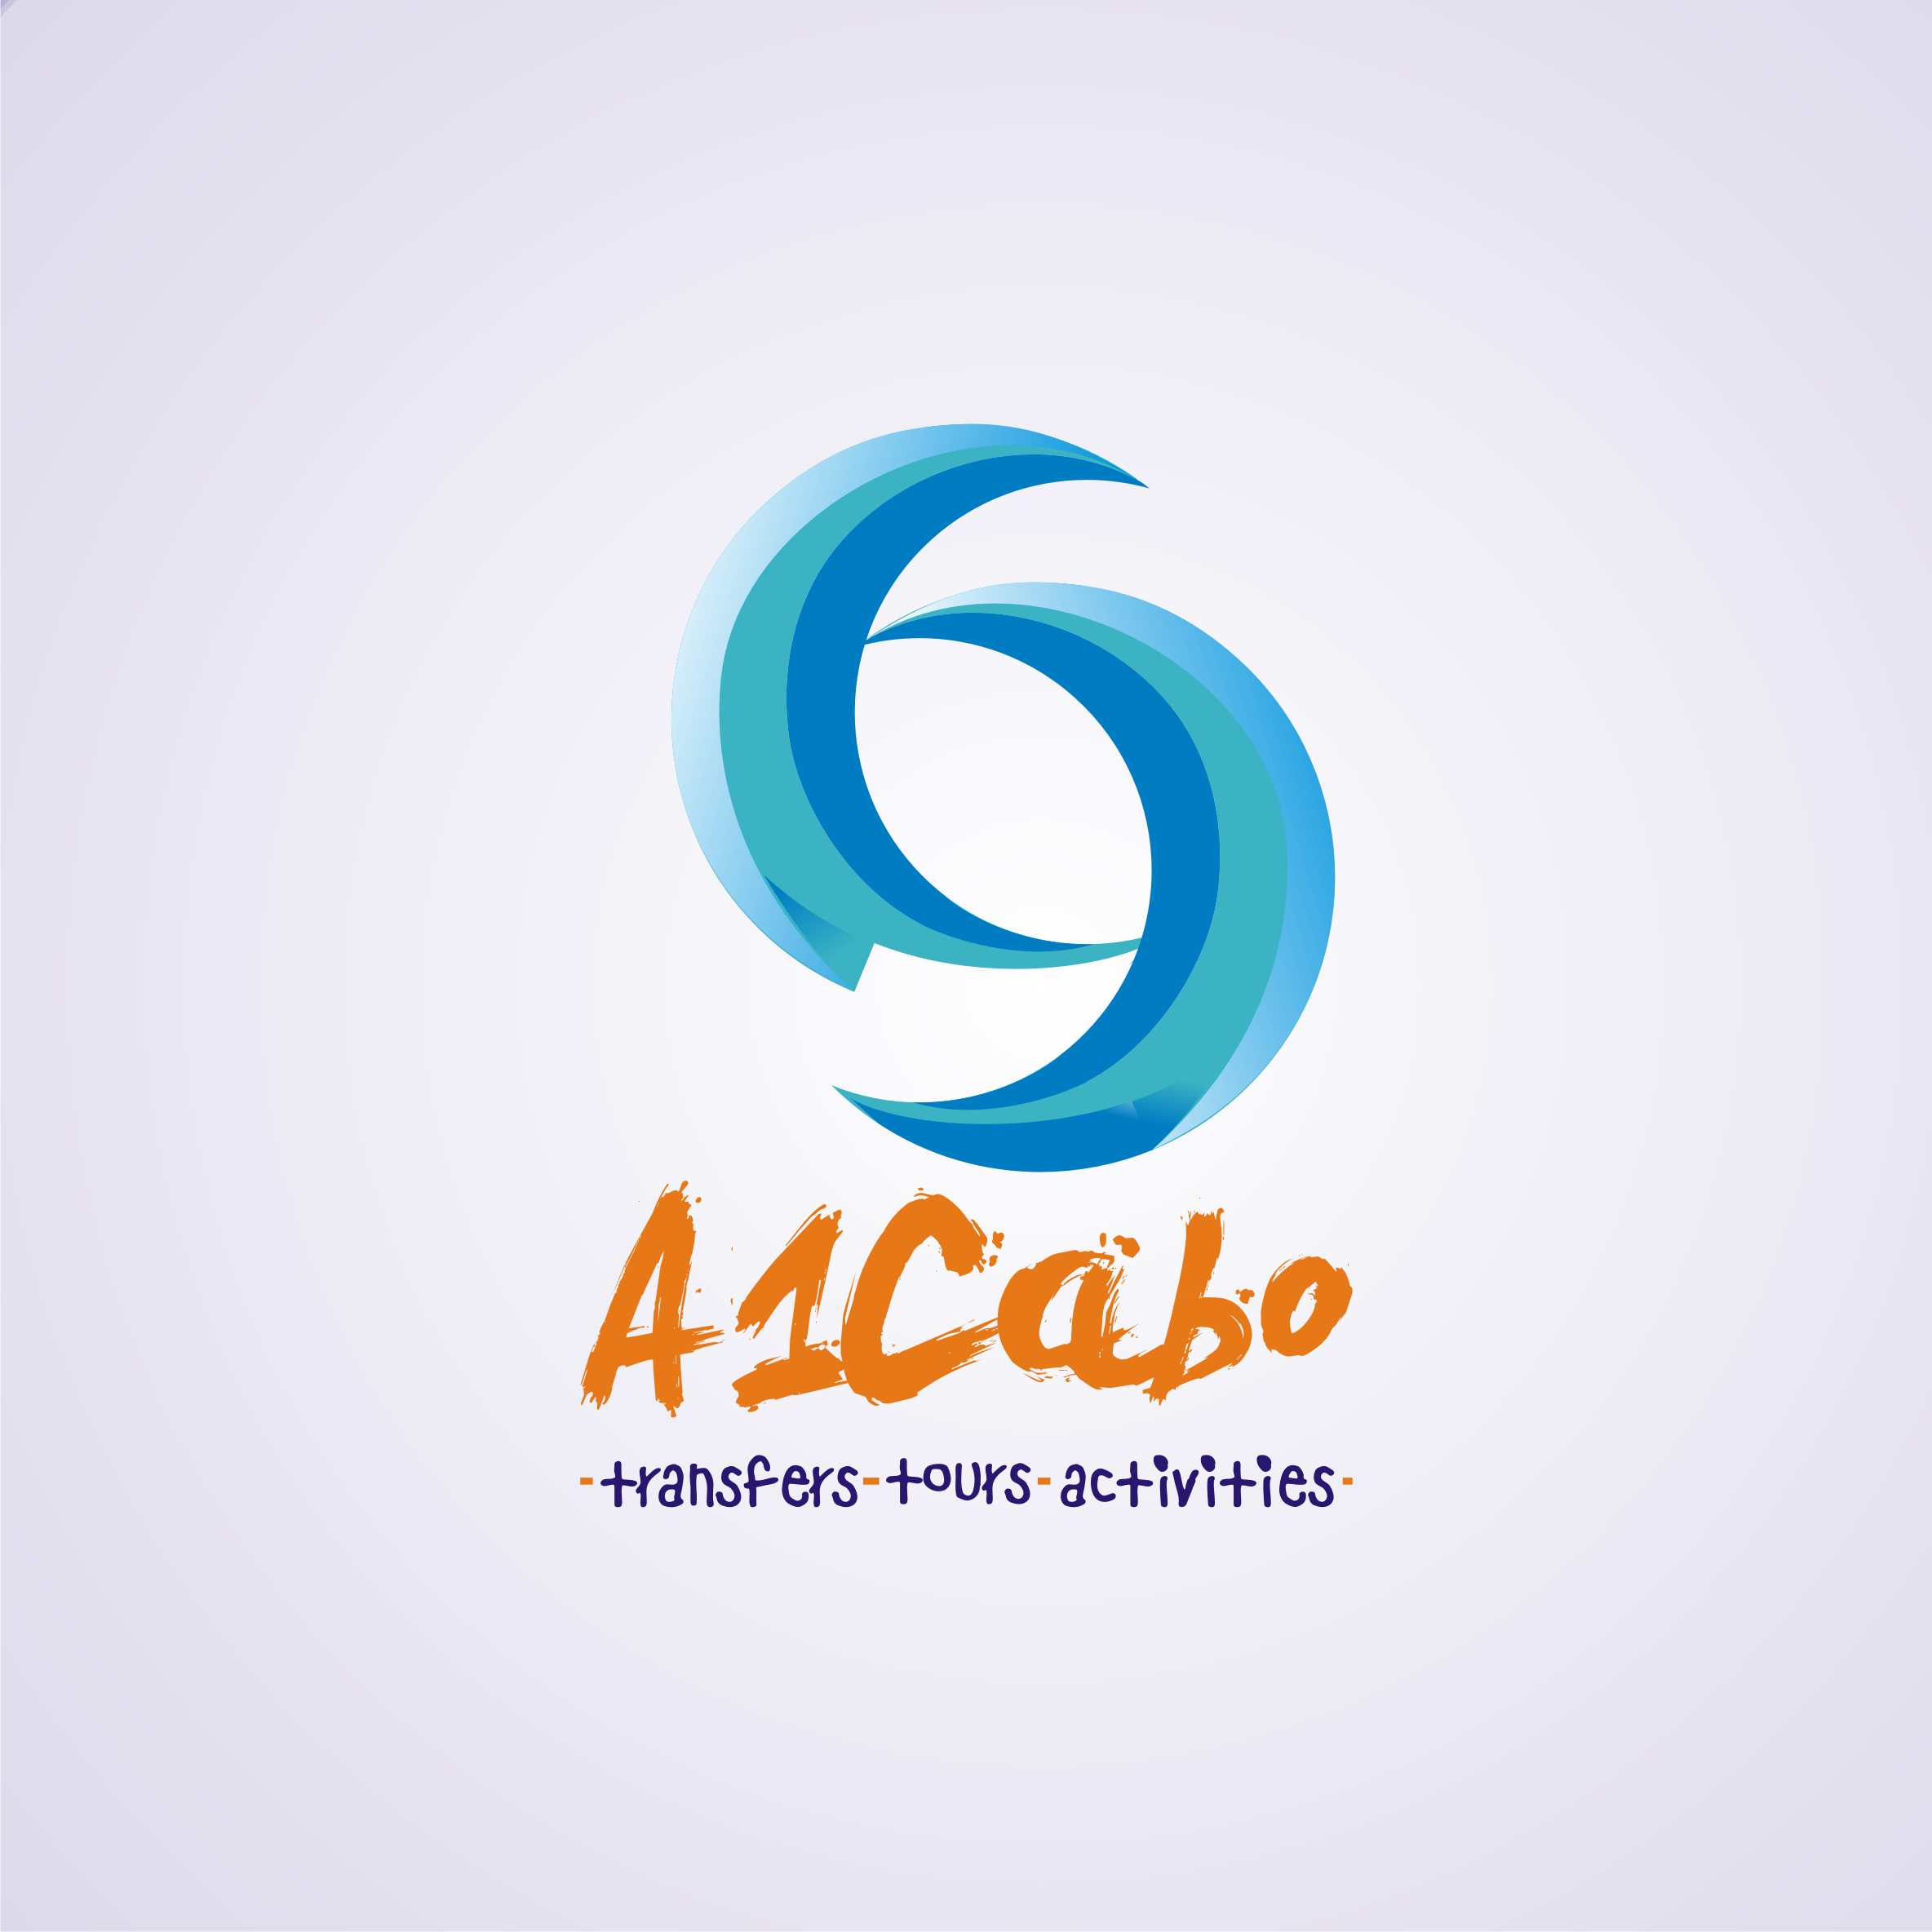 Logo Design by Private User - Entry No. 3 in the Logo Design Contest Inspiring Logo Design for A1Cabo.com.